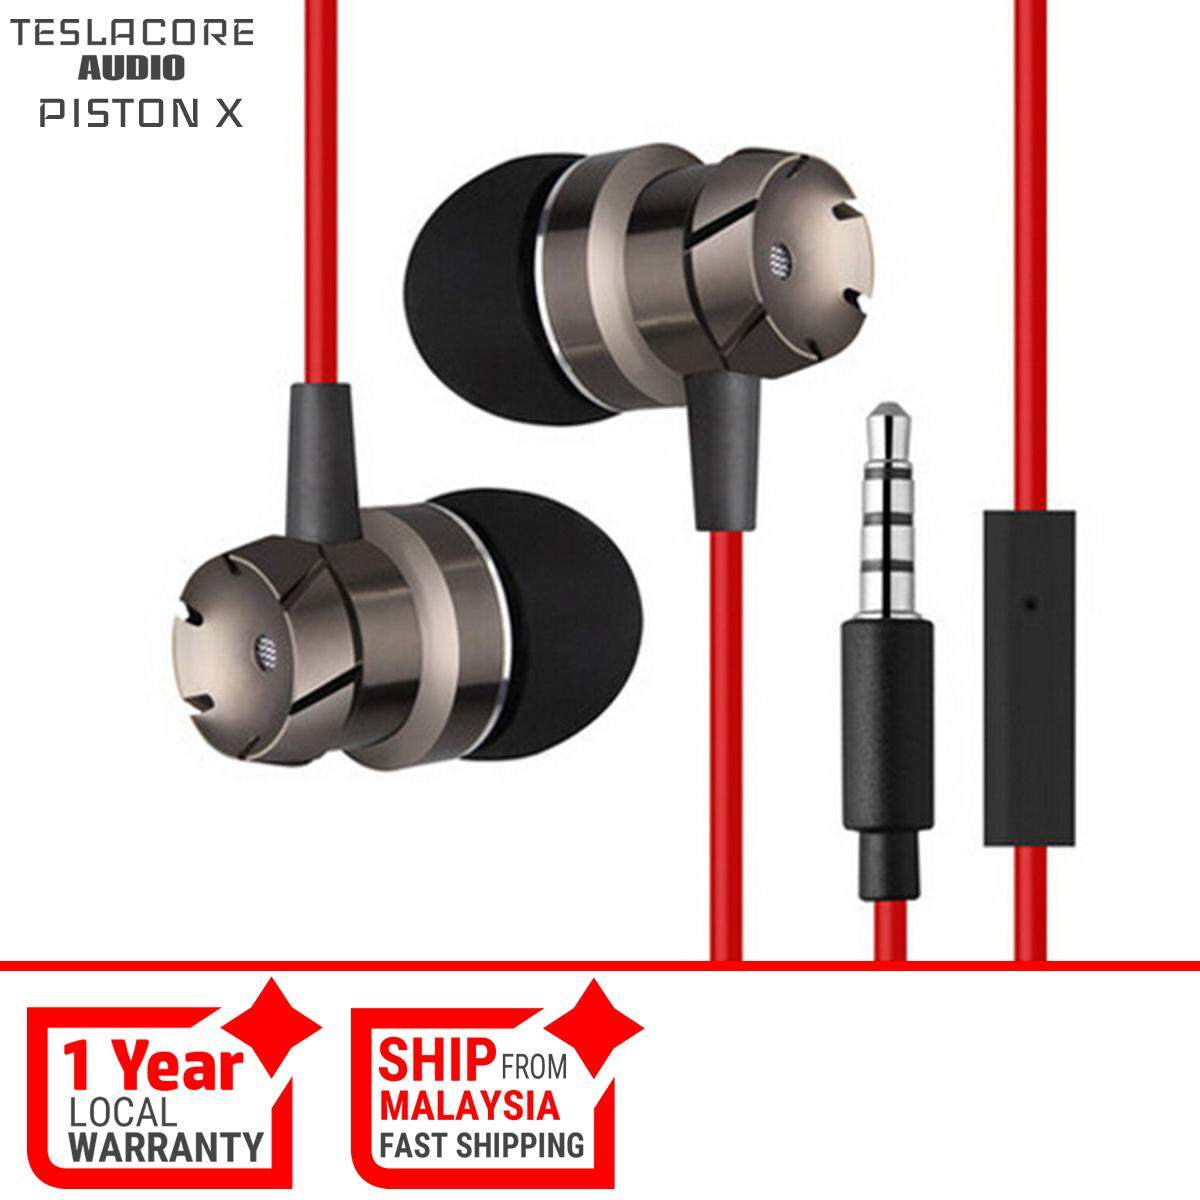 Earphones Headphones With Best Price In Malaysia Samsung J5 Handsfree Headset Earphone Earbud Mic Oem Piston Chrome Bullet Ear Stereo Bass Sound Noise Isolating For Phone